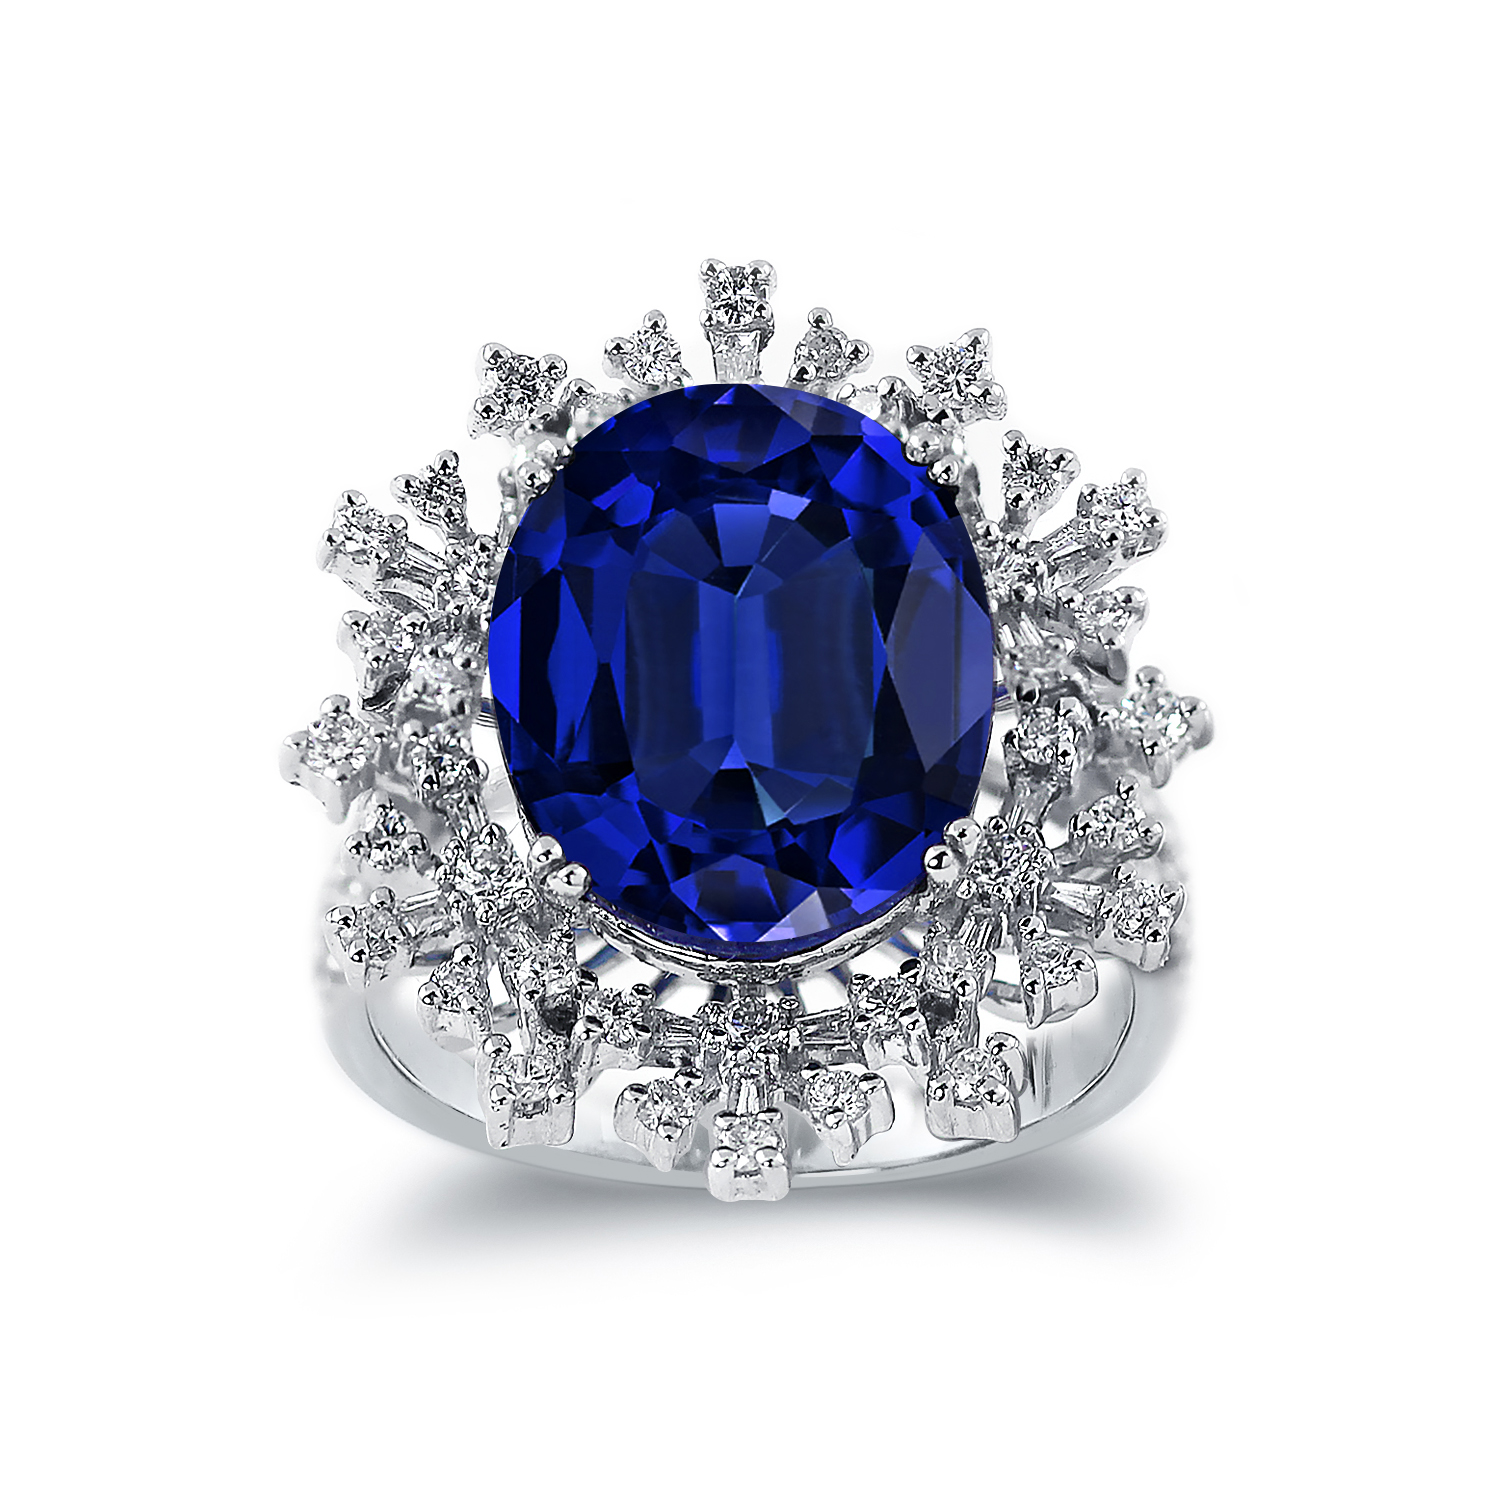 Andrea Princess Diana Inspired Halo Blue Sapphire Diamond Ring in 18K White Gold With 8.70 carat Oval Blue Sapphire